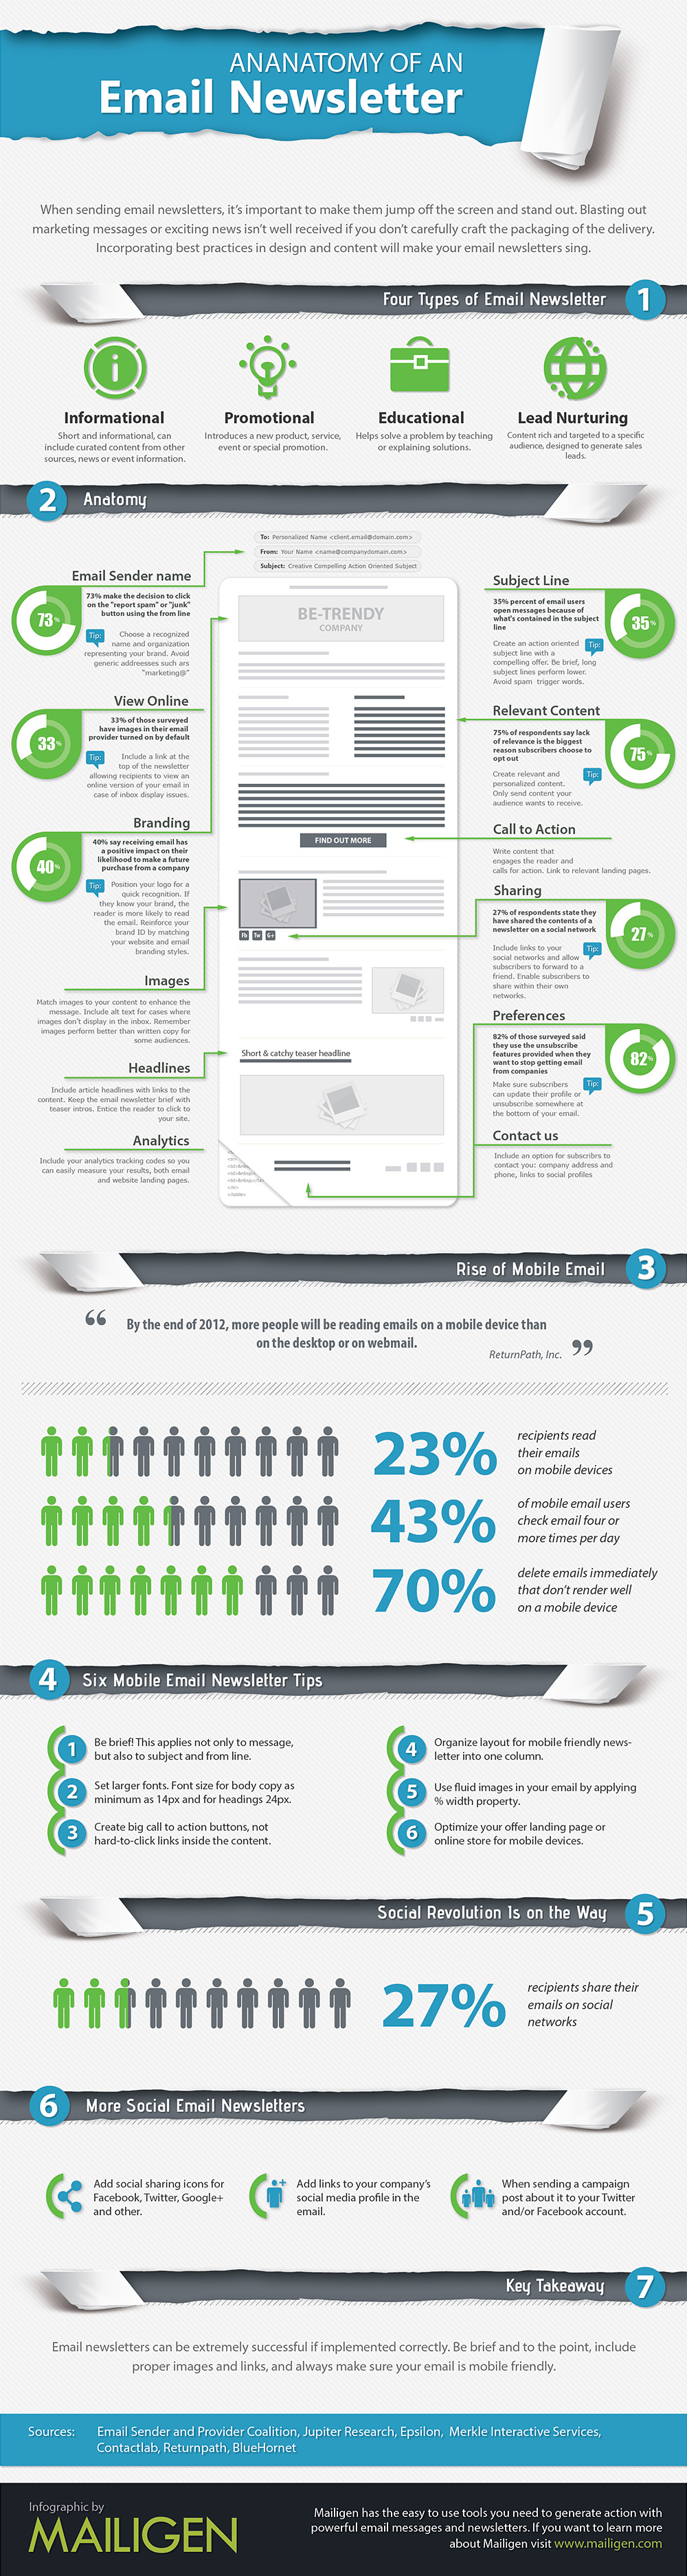 The Anatomy of An Email Newsletter: Is Your Email Ready to Send? [INFOGRAPH]